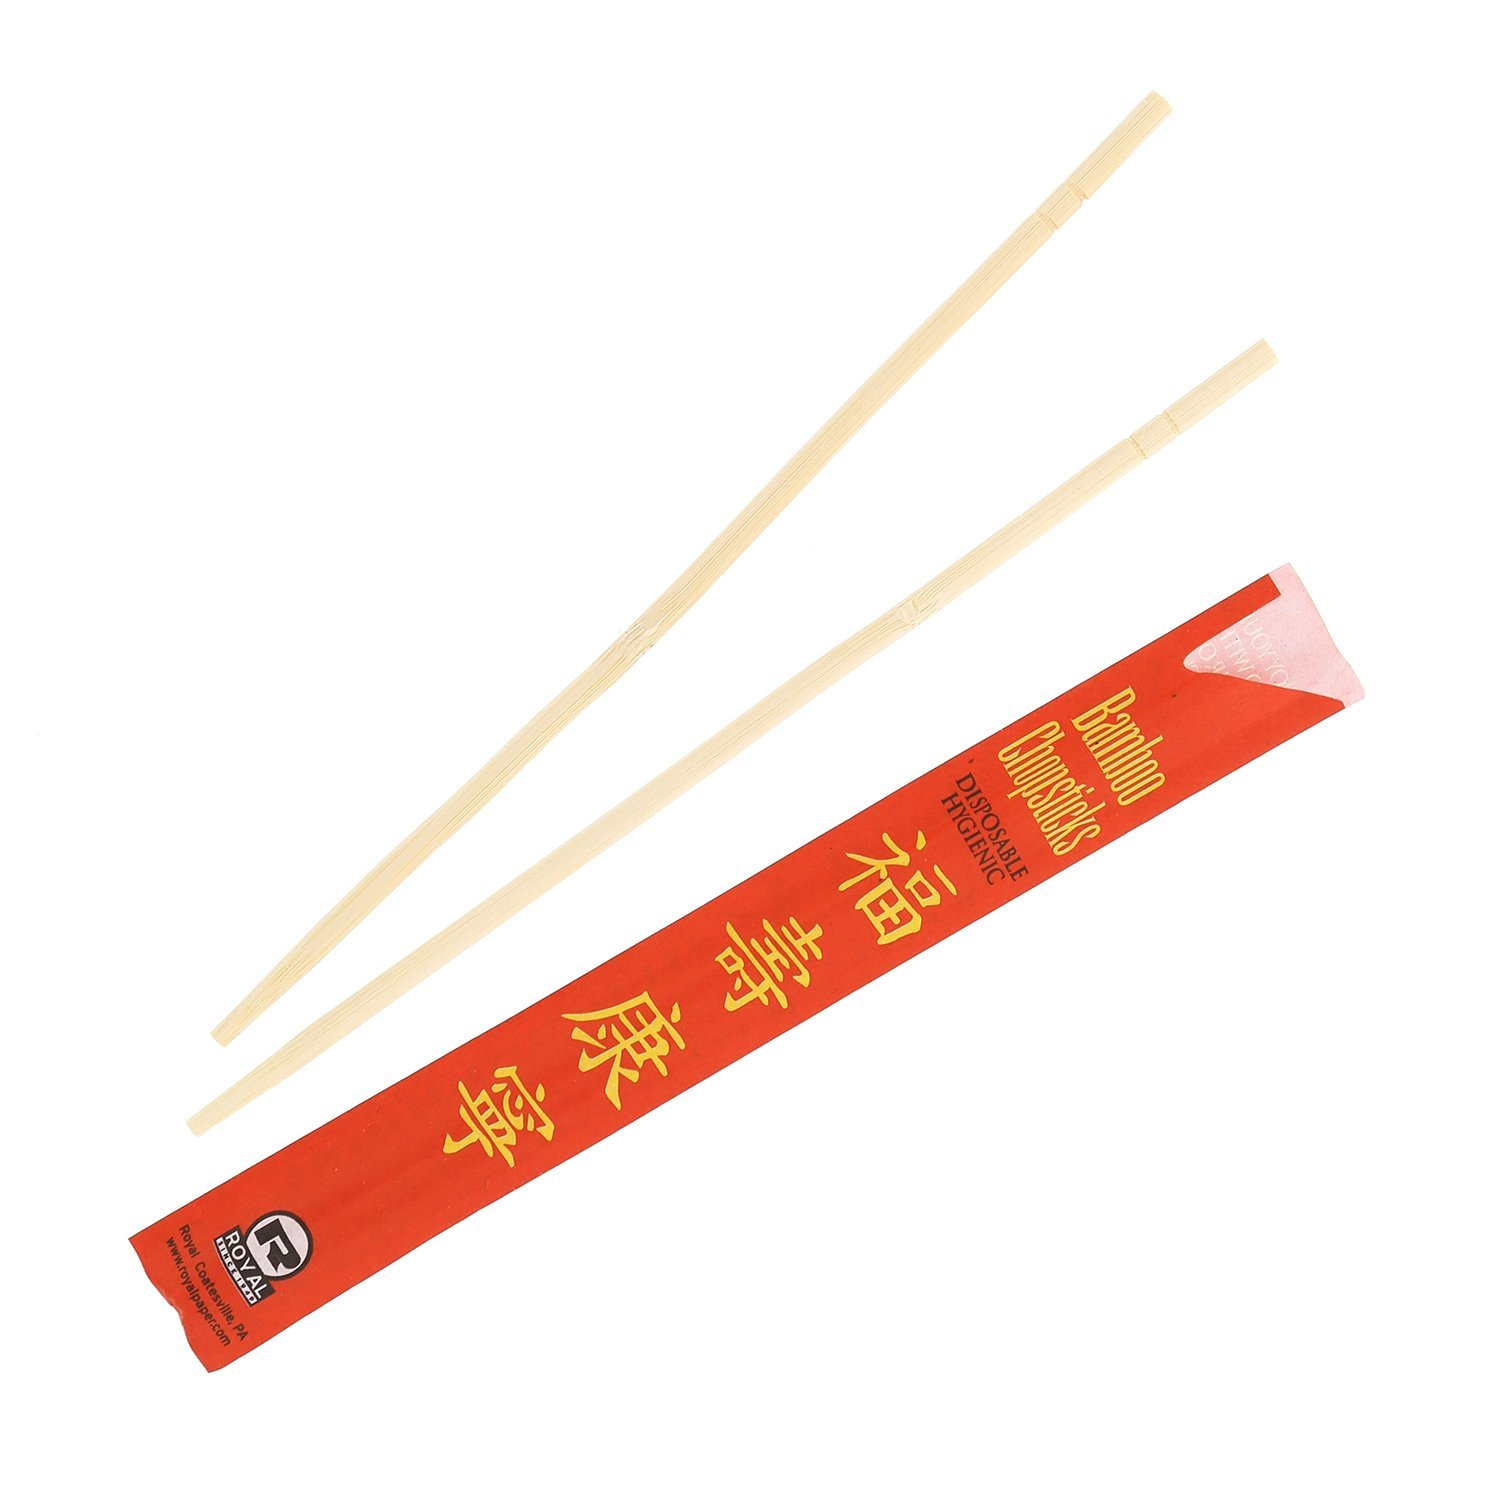 Royal premium disposable bamboo chopsticks